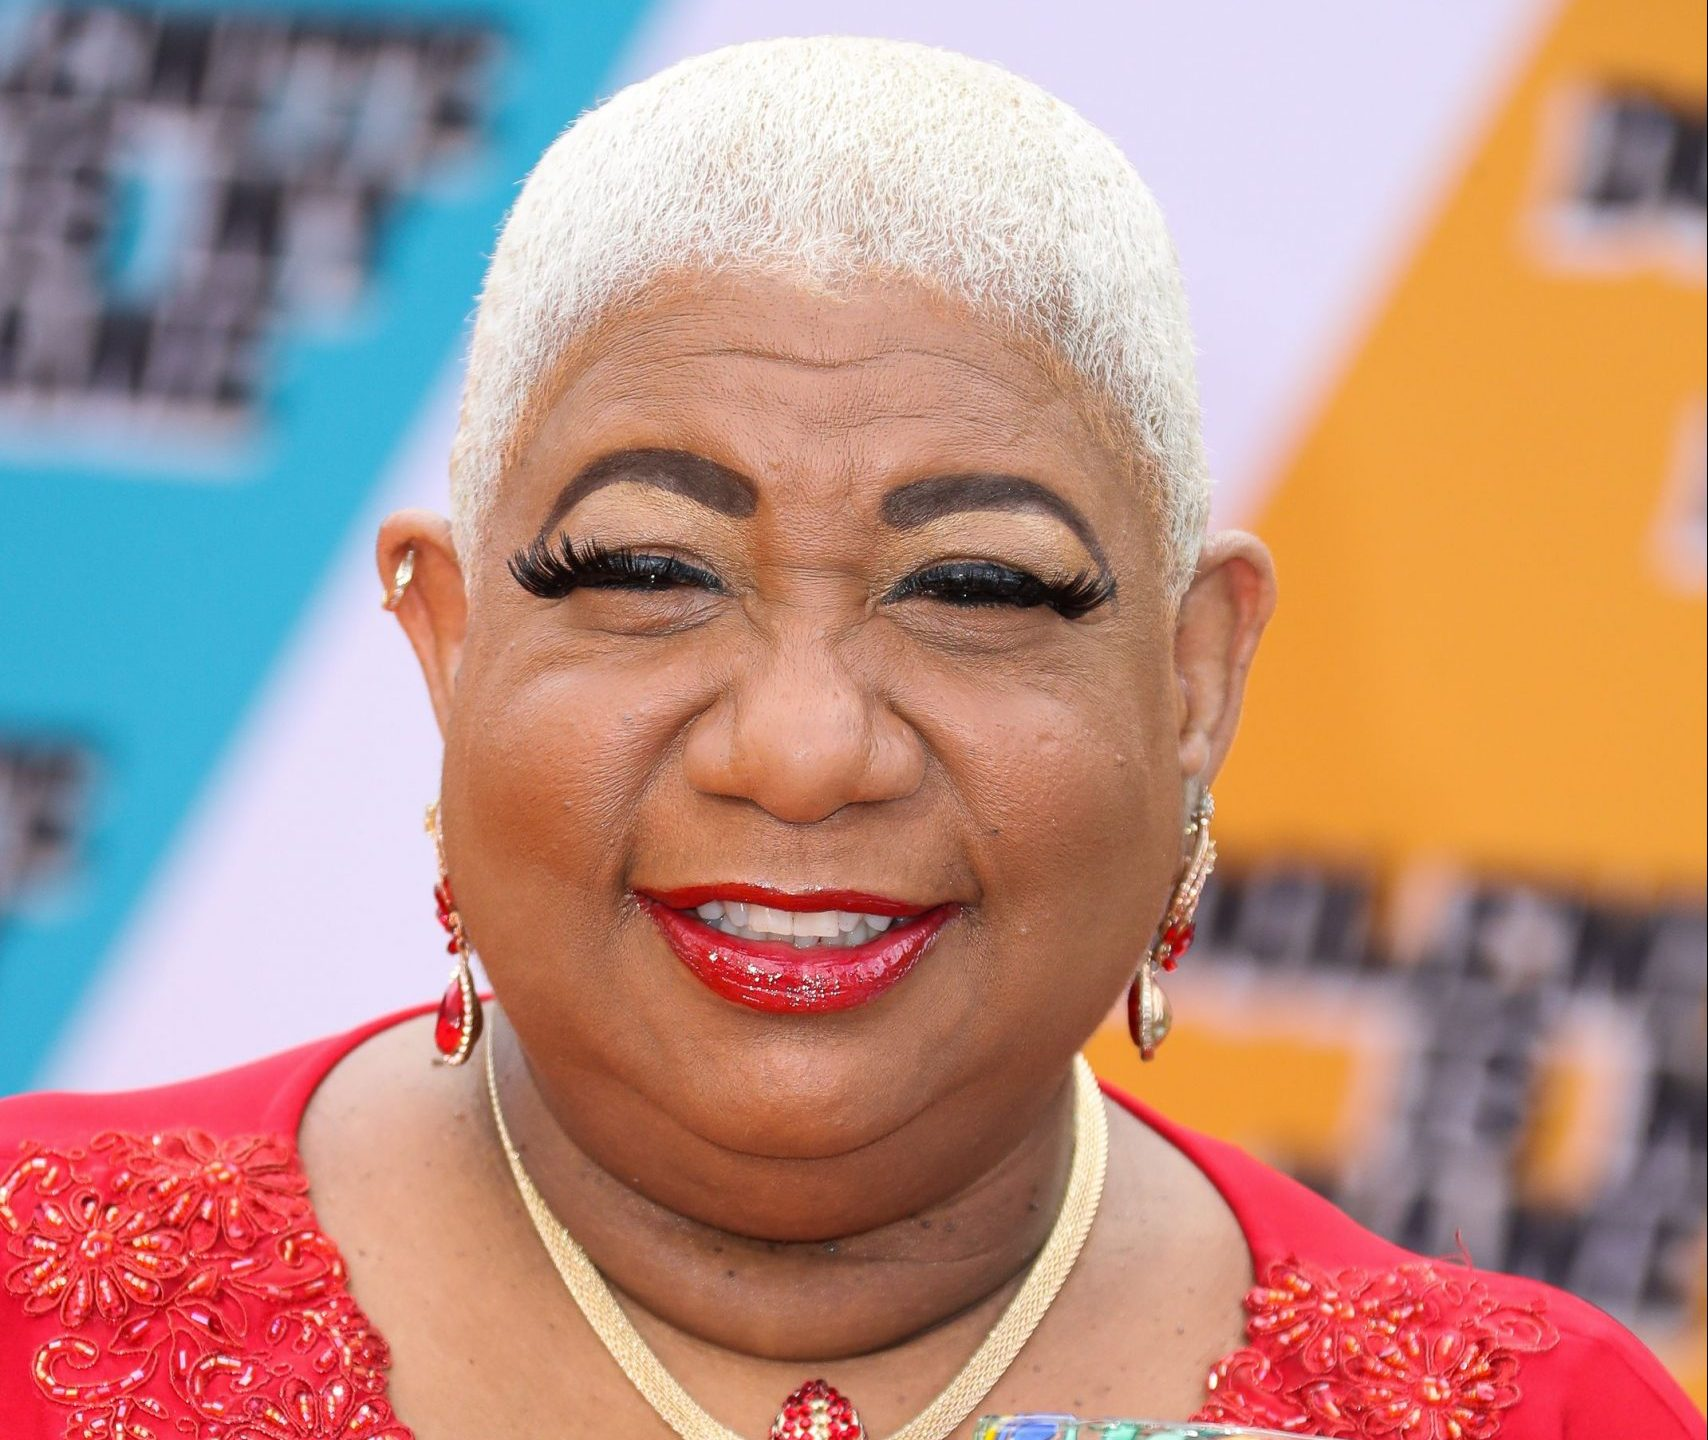 Luenell Reveals That She Went to Jail For Robbing a Bank Before Becoming a Famous Comedian